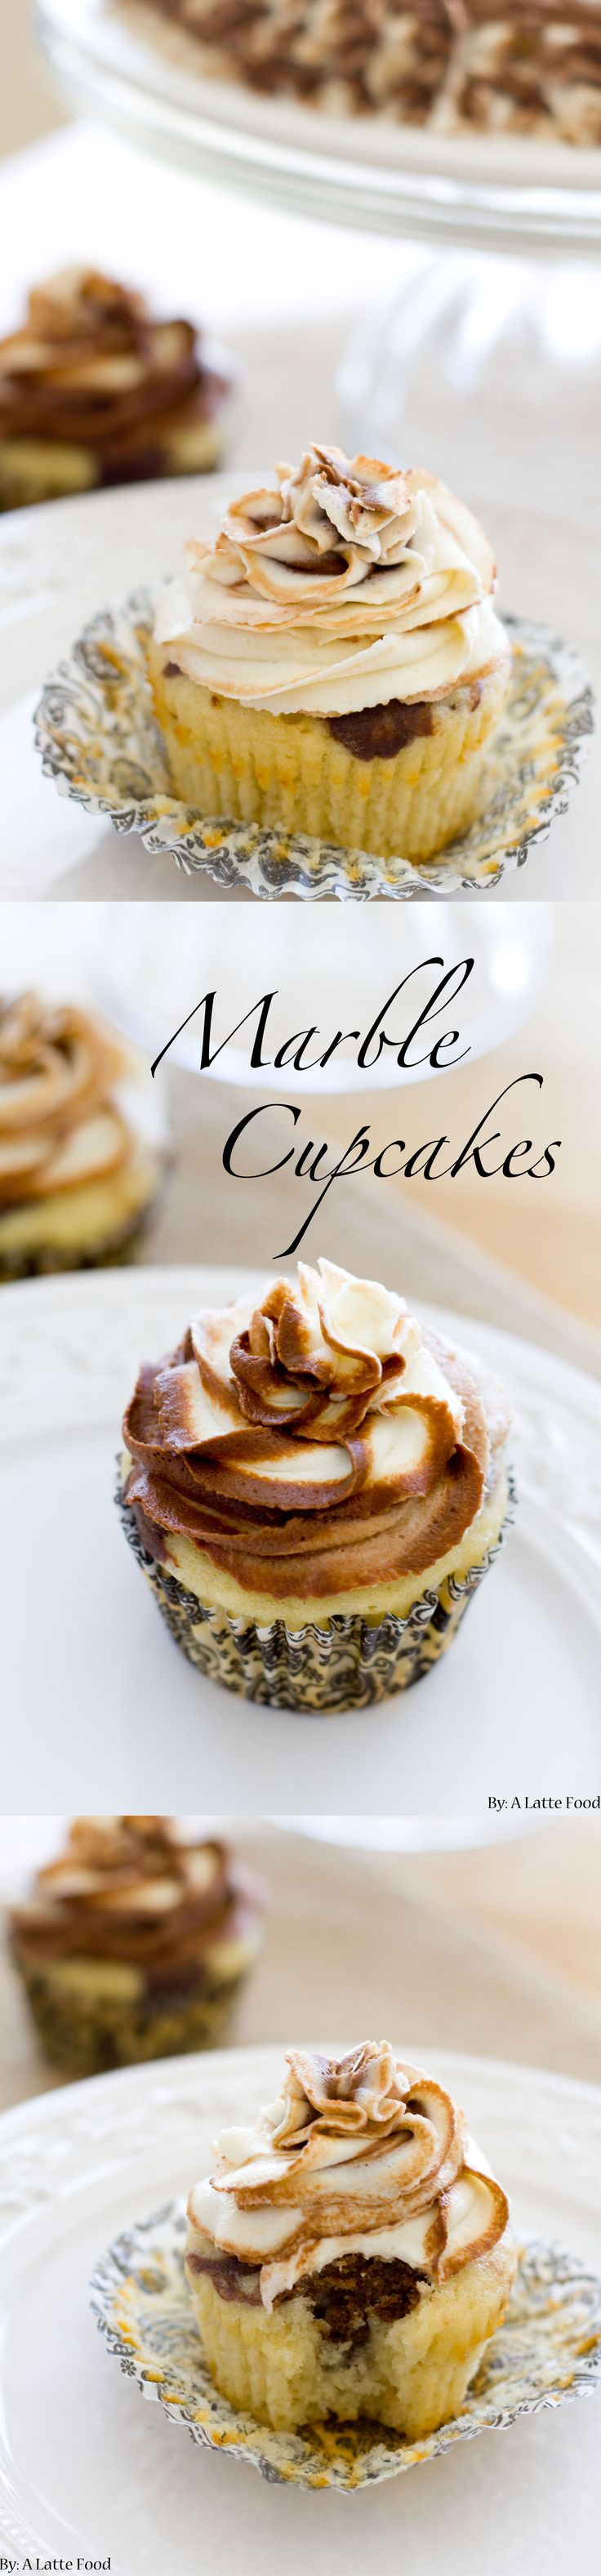 Chocolate Vanilla Marble Cupcakes | Rich chocolate cake is swirled with classic vanilla to create one incredible cupcake. Top it with chocolate and vanilla swirled frosting for the perfect marble cake!